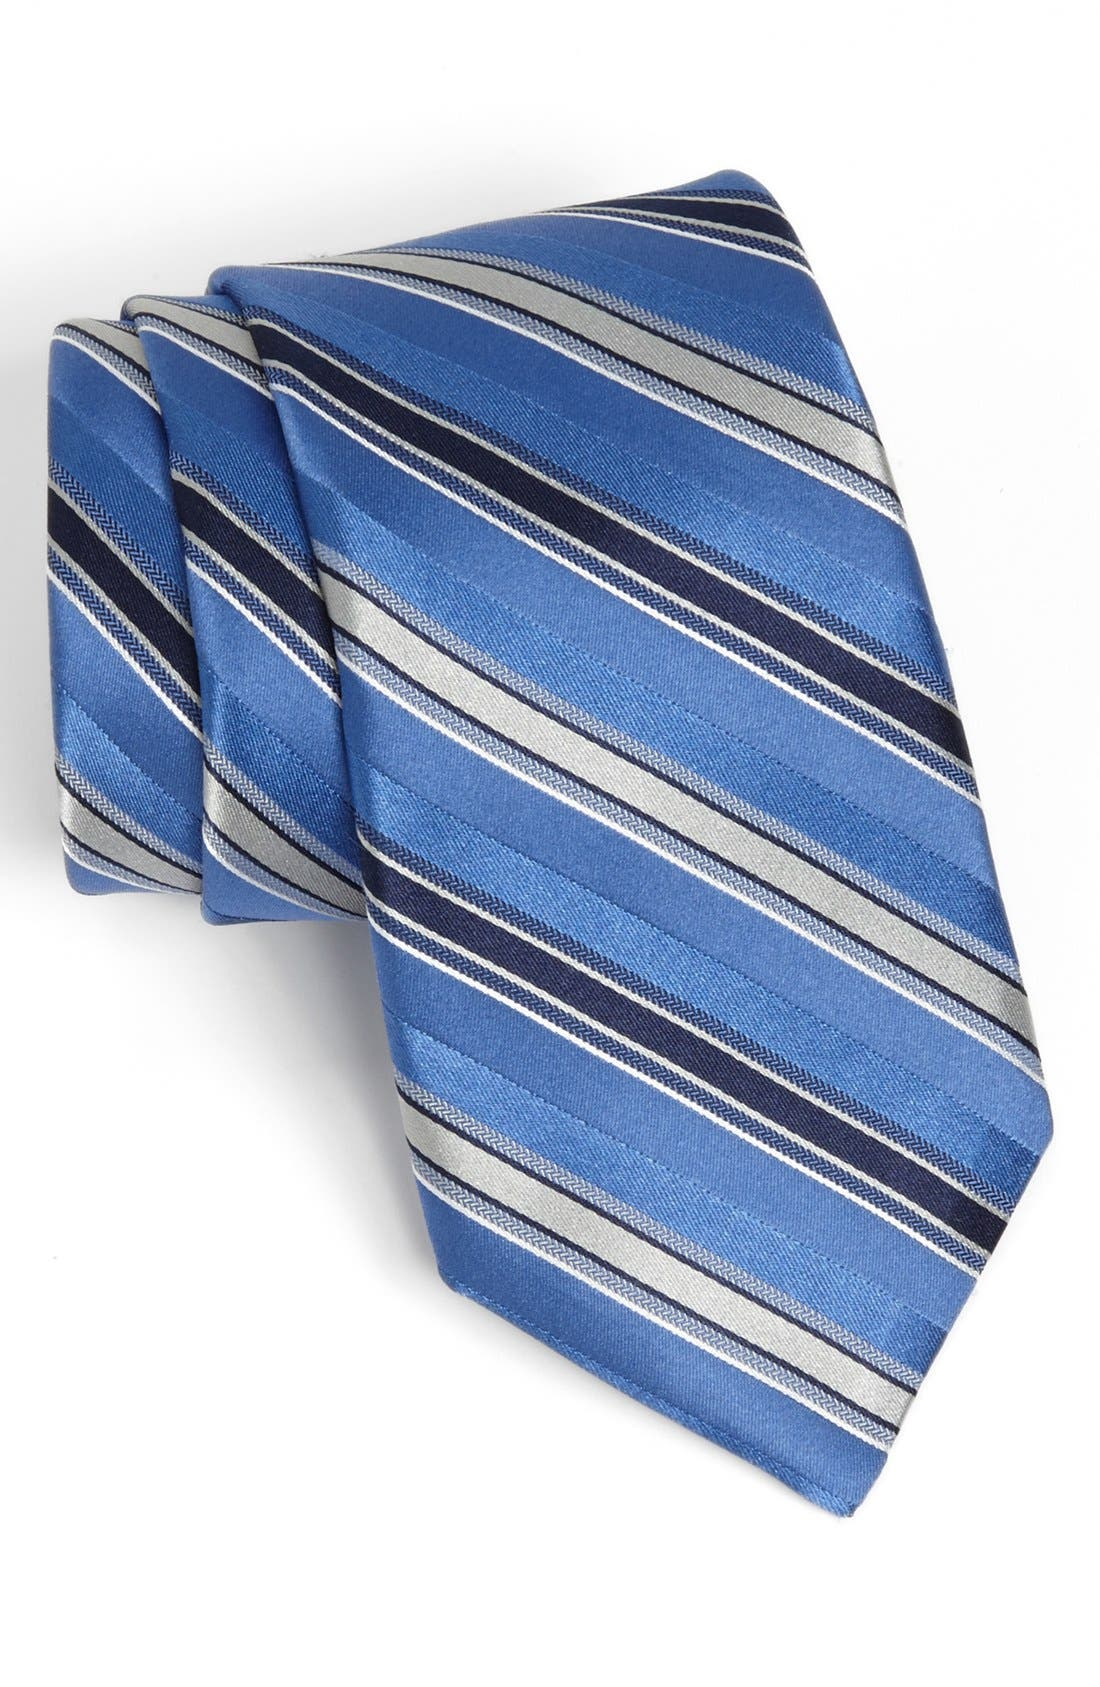 Main Image - Michael Kors 'Wilton' Stripe Silk Tie